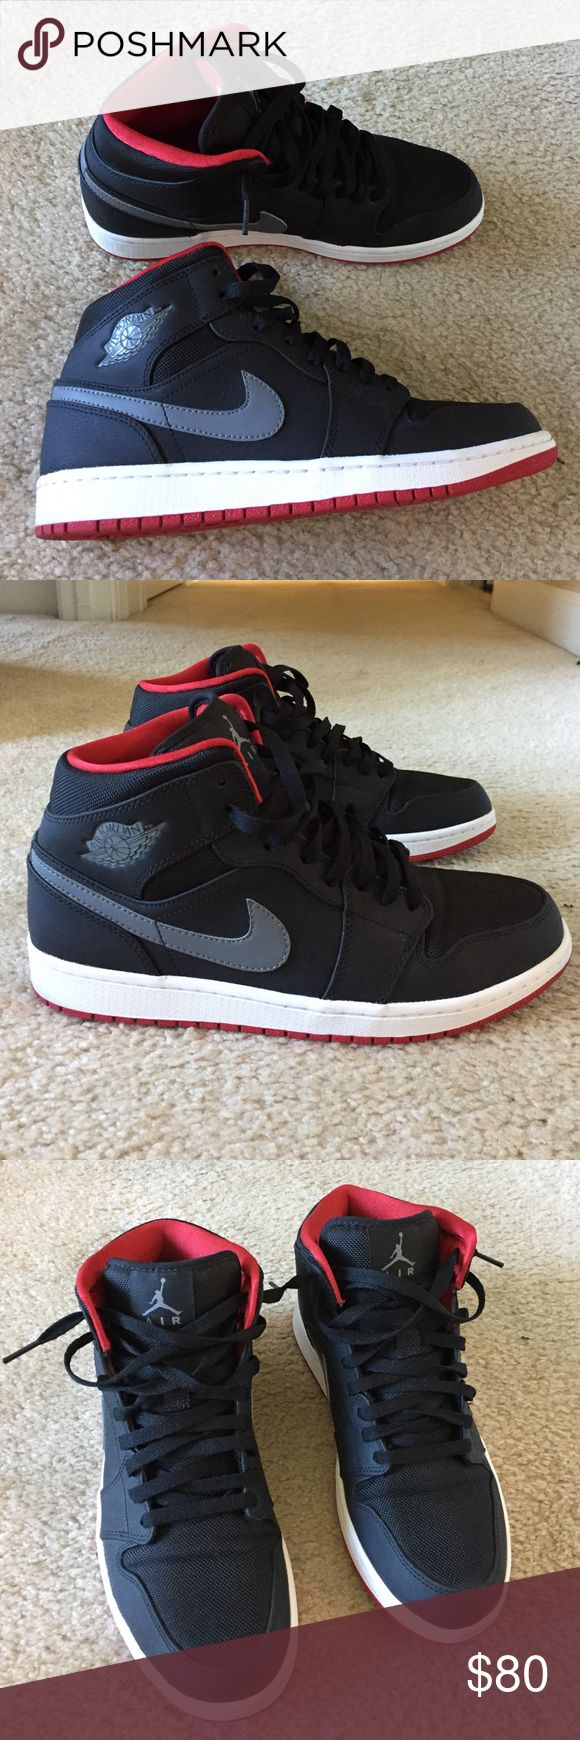 Authentic Nike Air Jordan 1 Black and Red Like new condition. Tried on and walked around once but never worn after that. Men's size 10 Nike Shoes Athletic Shoes